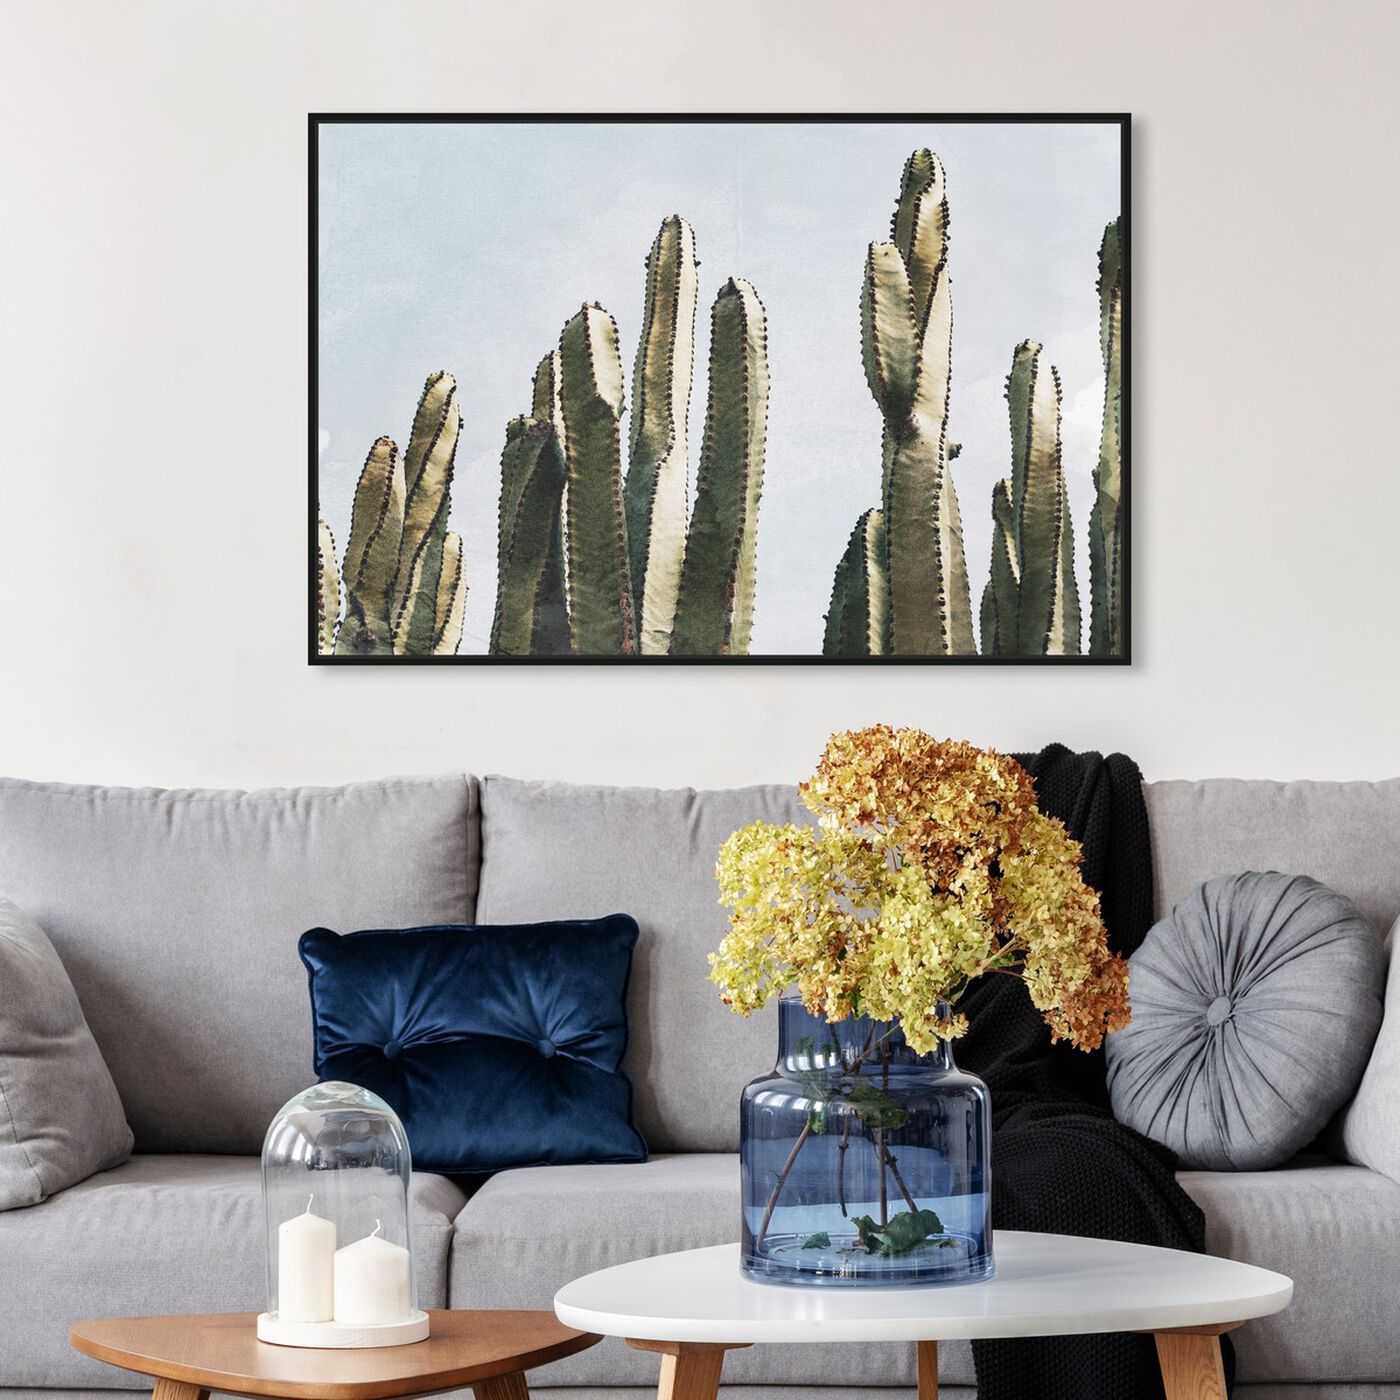 Hanging view of Muted Cactus featuring floral and botanical and botanicals art.